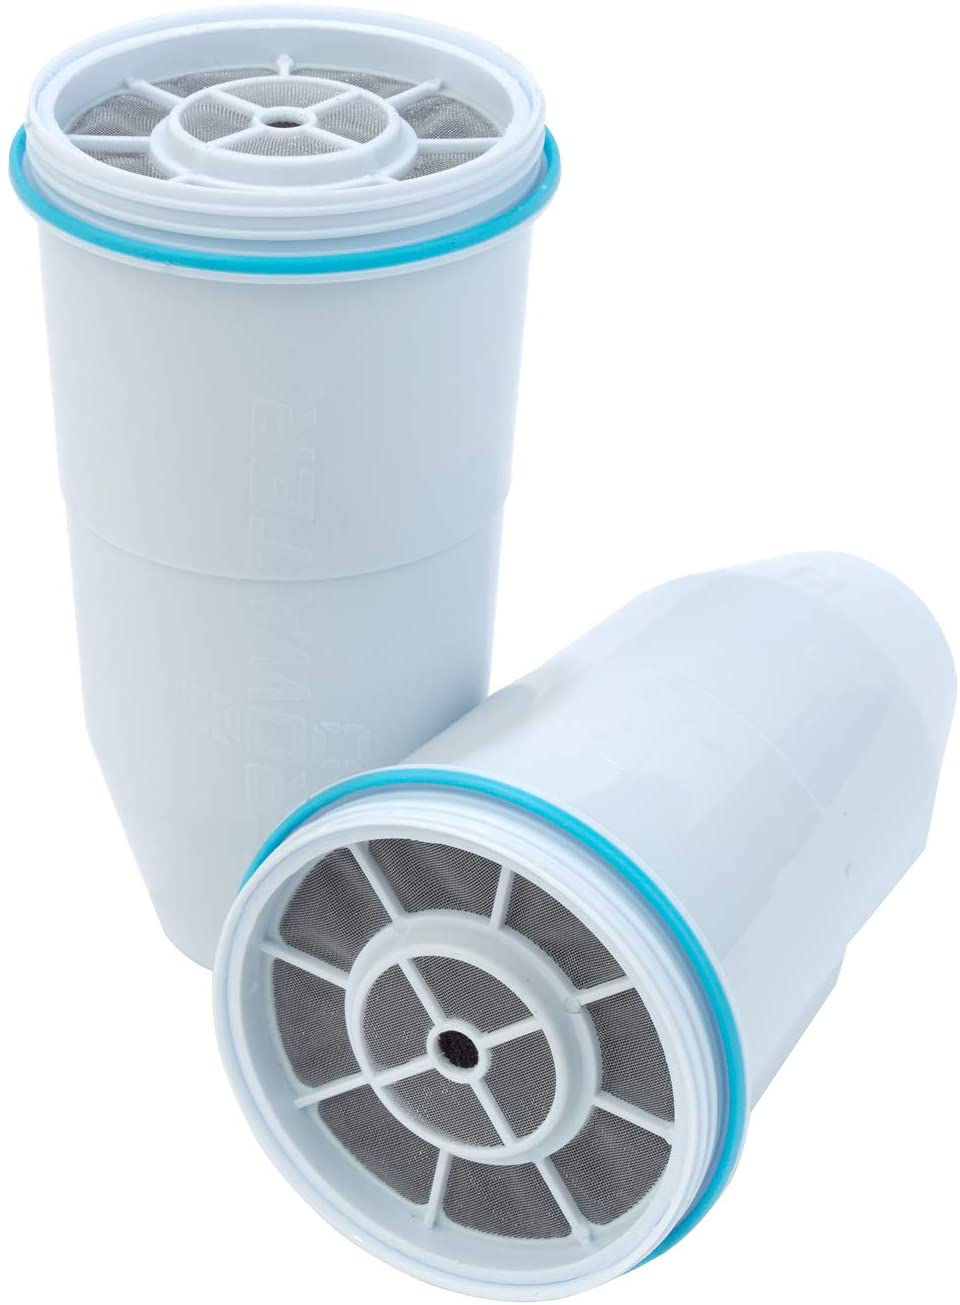 ZeroWater Replacement Water Filter, 2-Pack